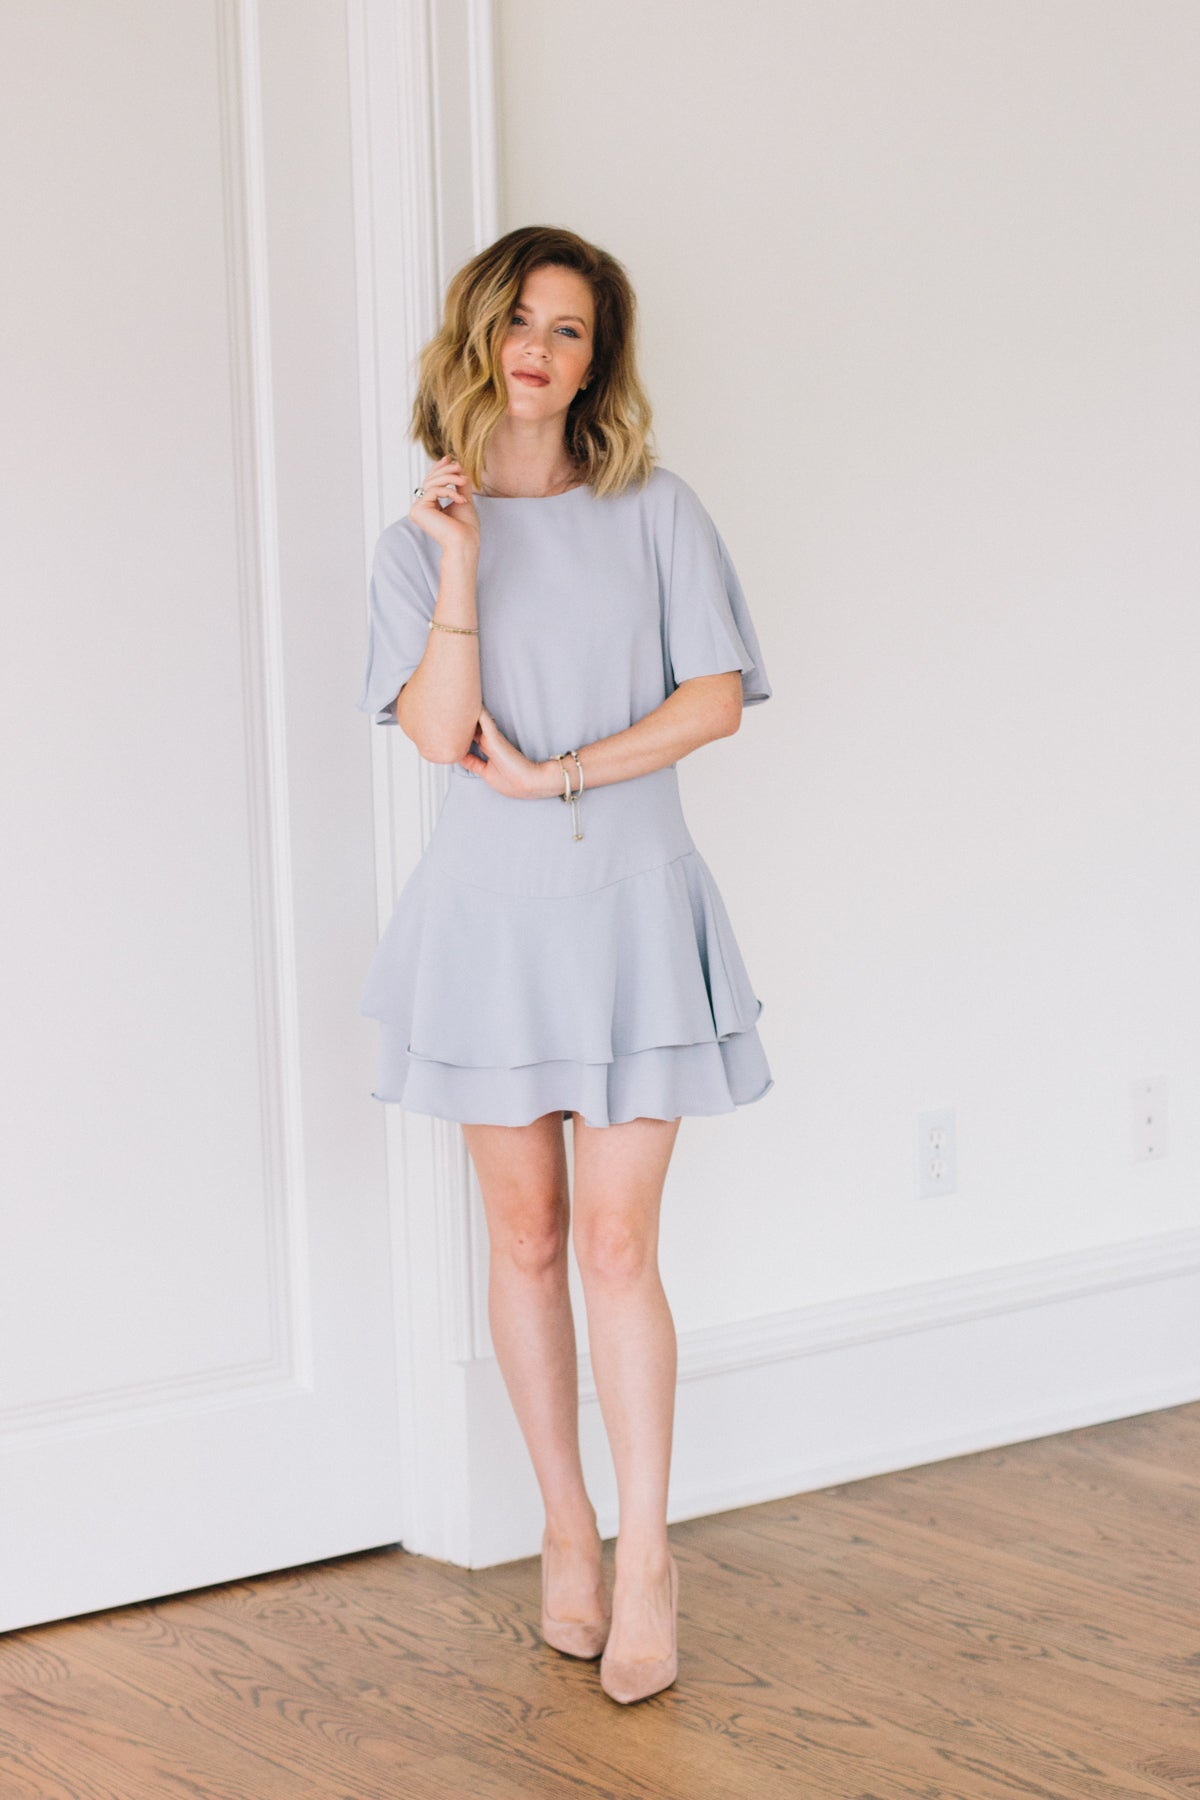 Before I Cry Dress - Dove